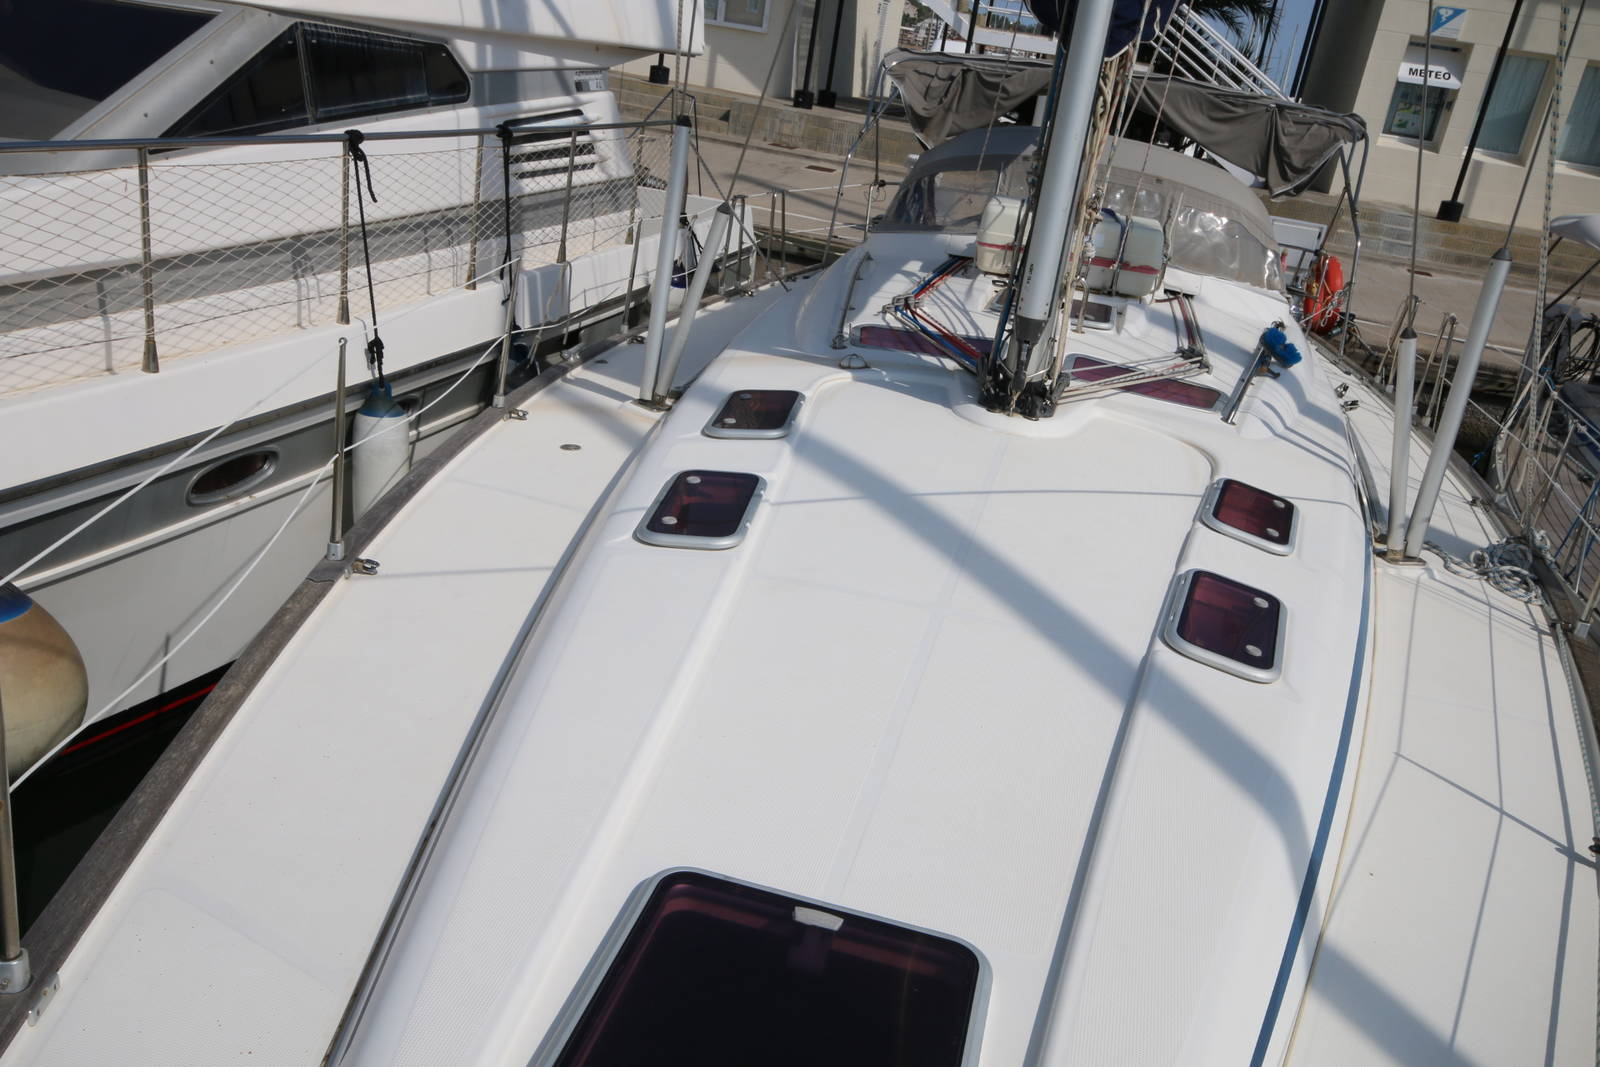 Bavaria 46 Yacht Deck on Boat 2